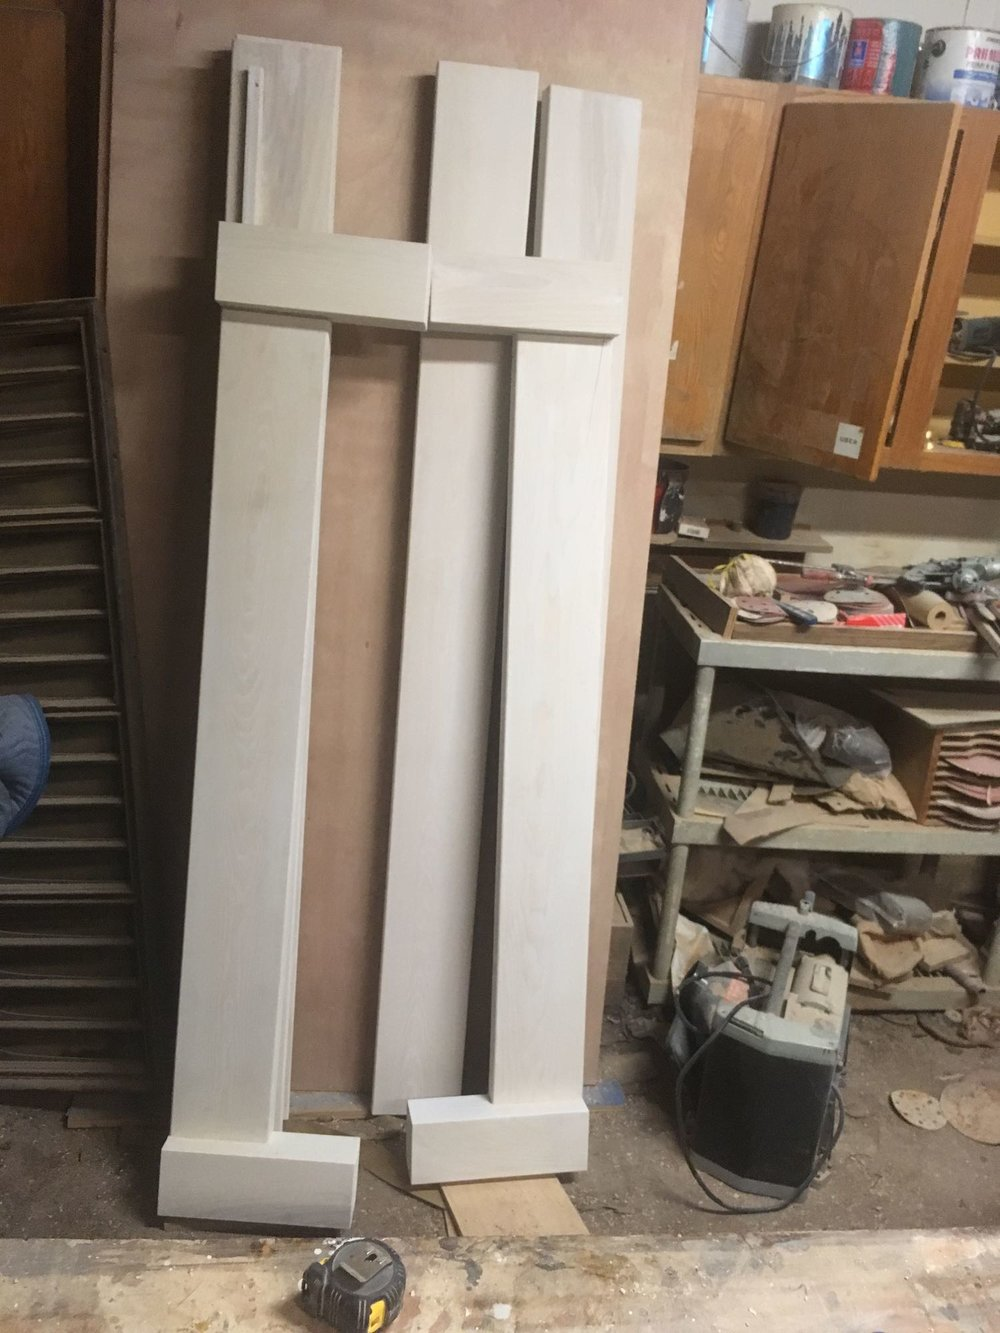 Rails and footboards